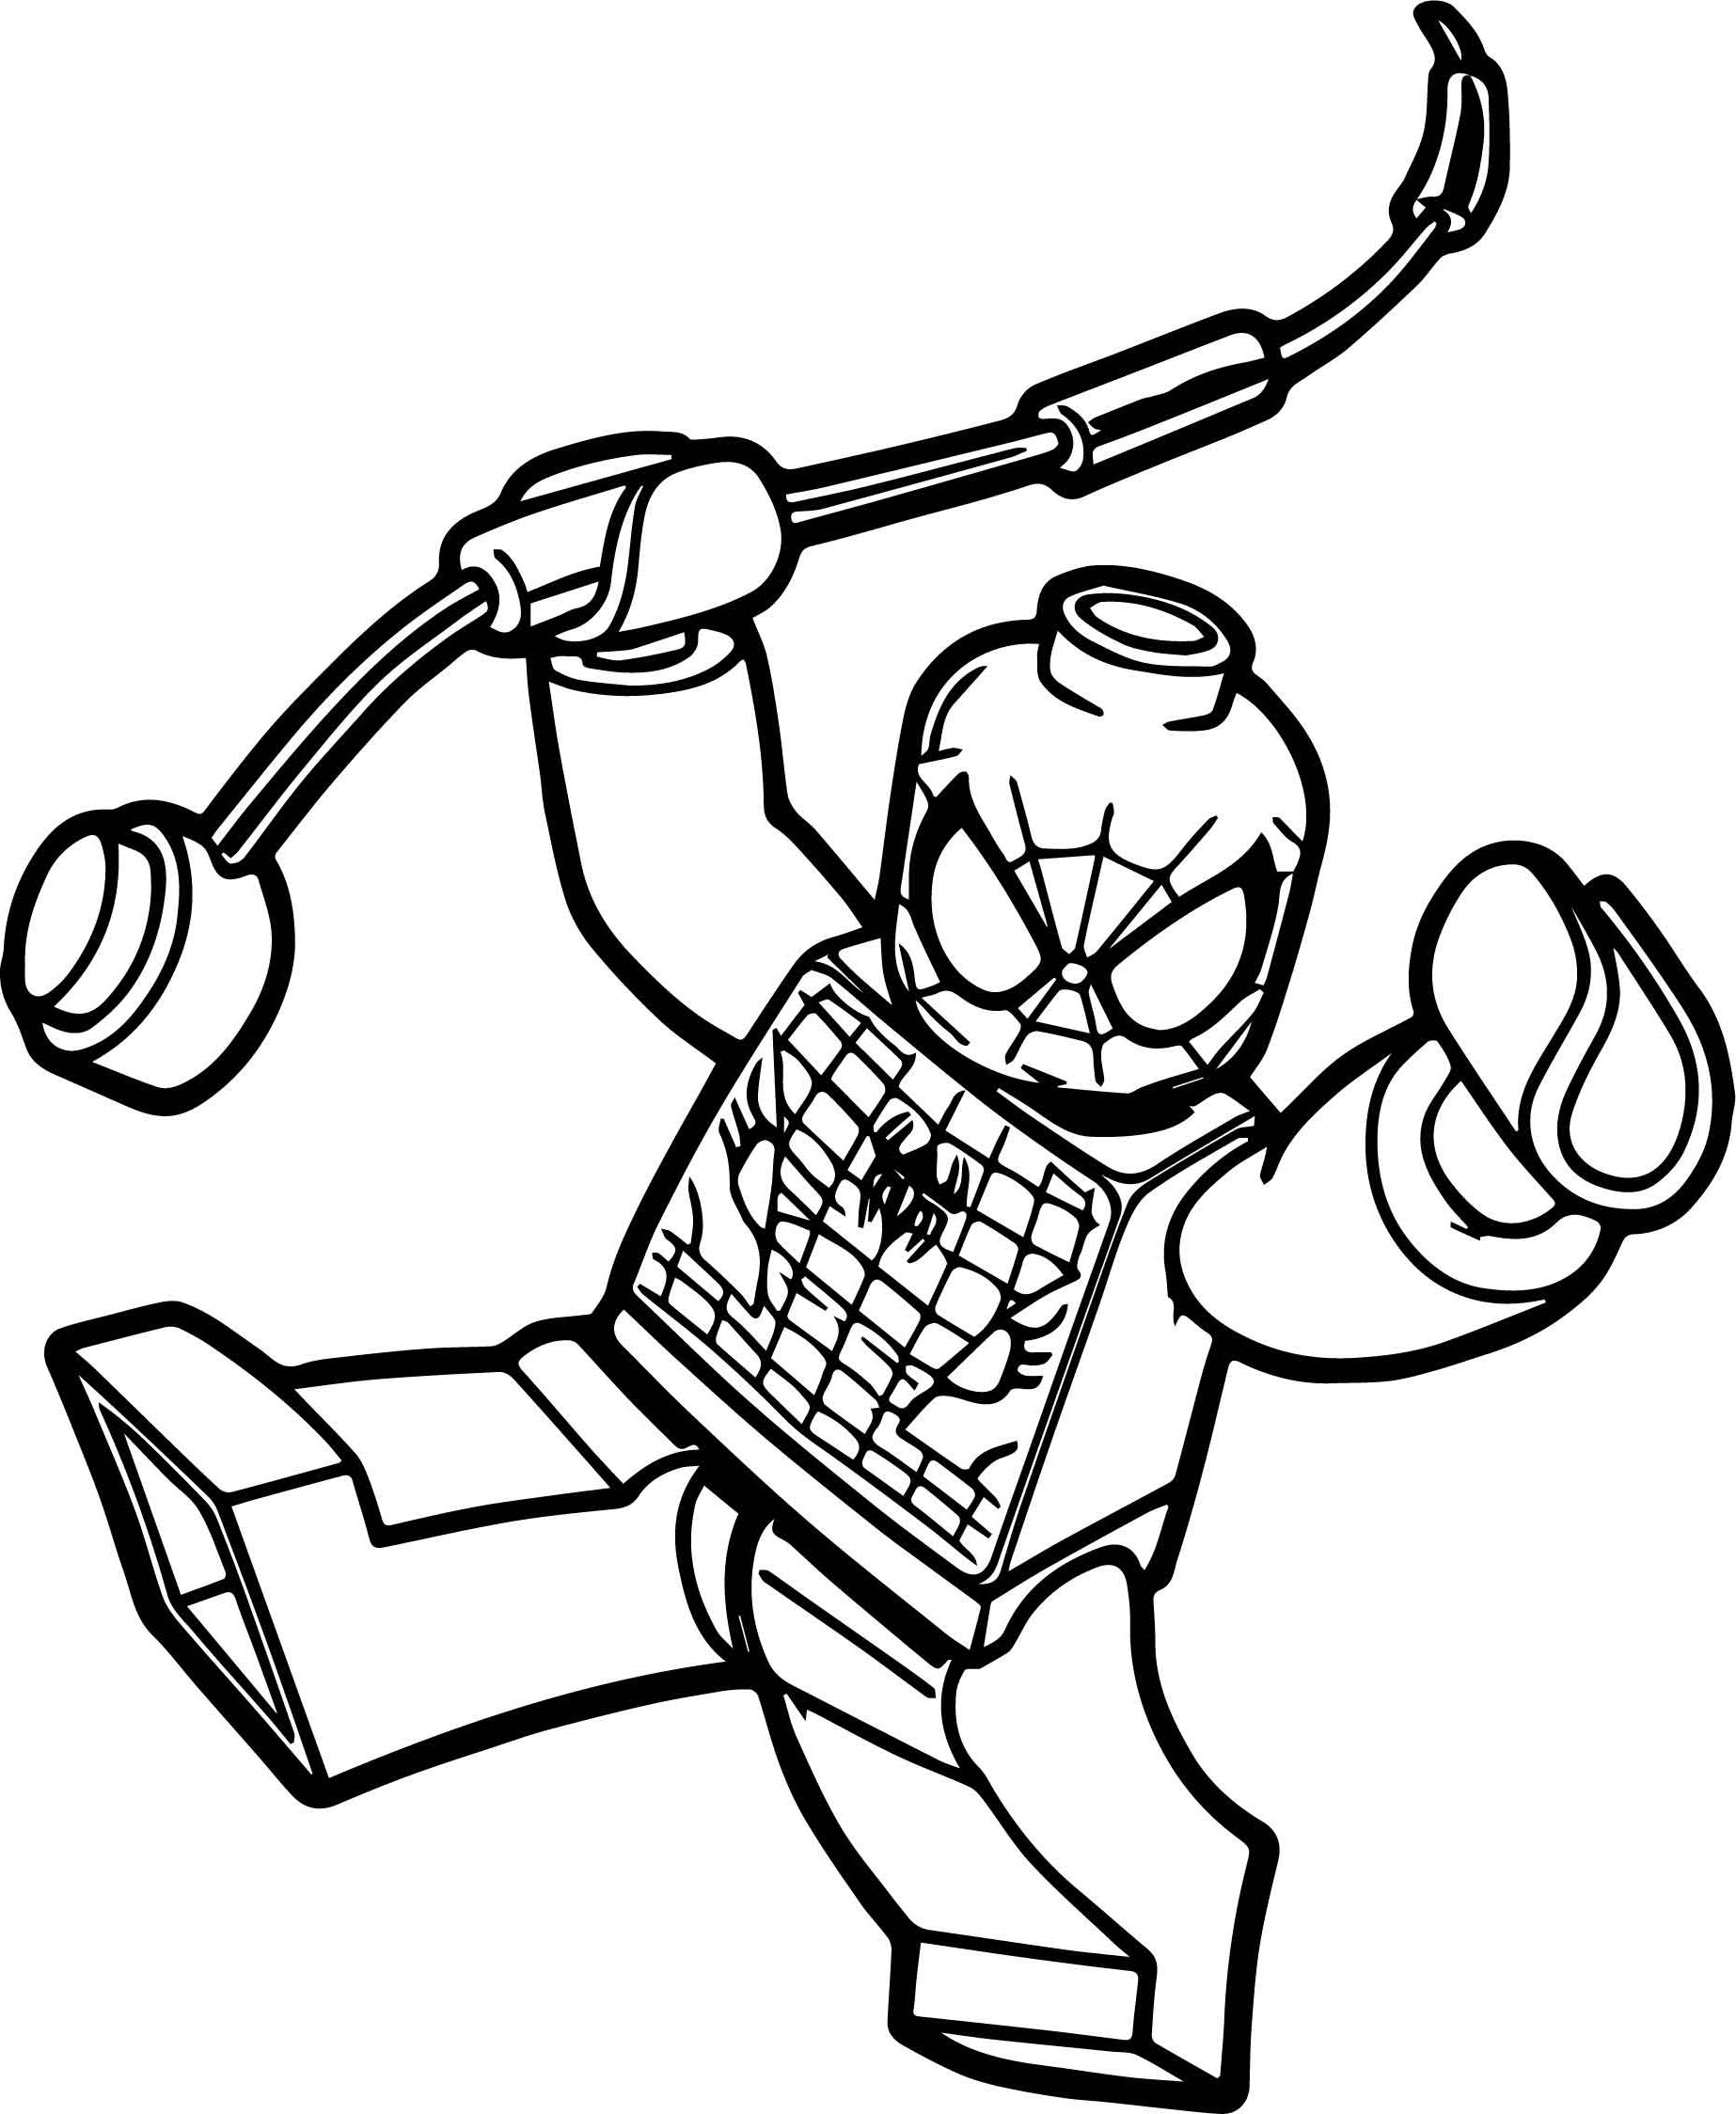 It's just a picture of Old Fashioned Lego Spiderman Coloring Page